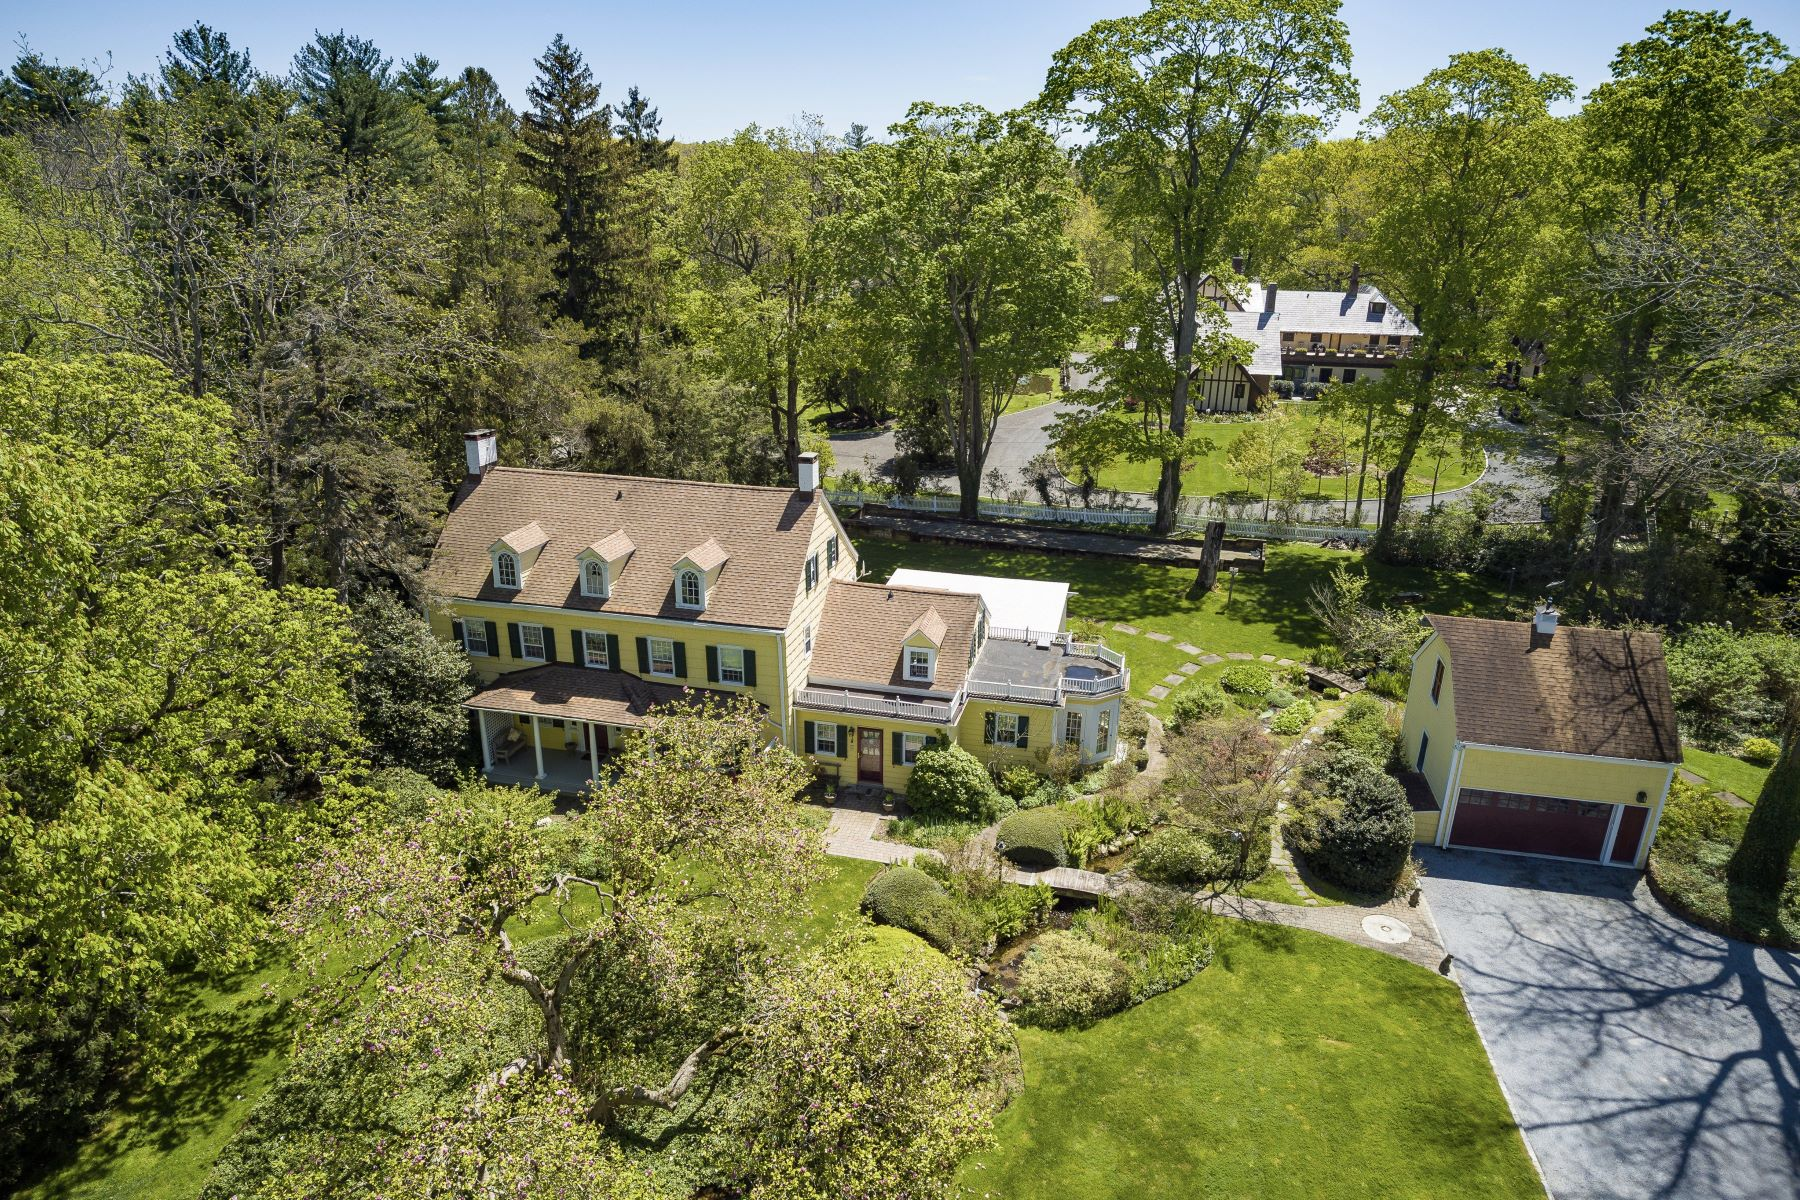 Single Family Homes for Sale at Oyster Bay Cove 155 Royston Ln Oyster Bay Cove, New York 11771 United States